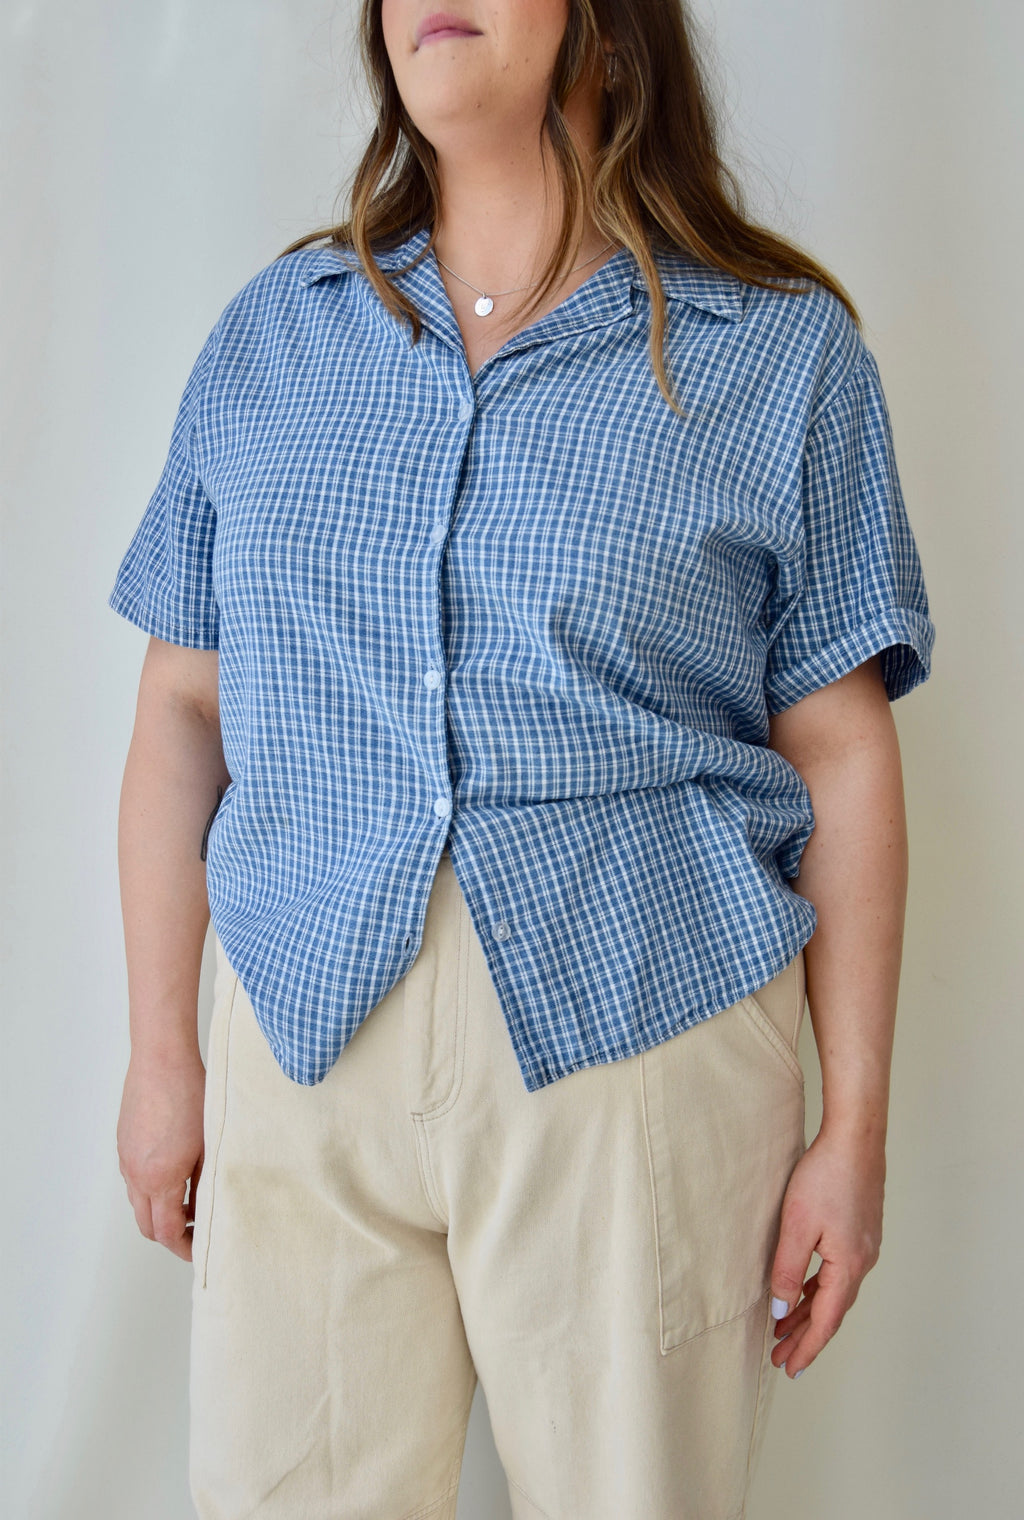 90's Blue Cotton Plaid Top